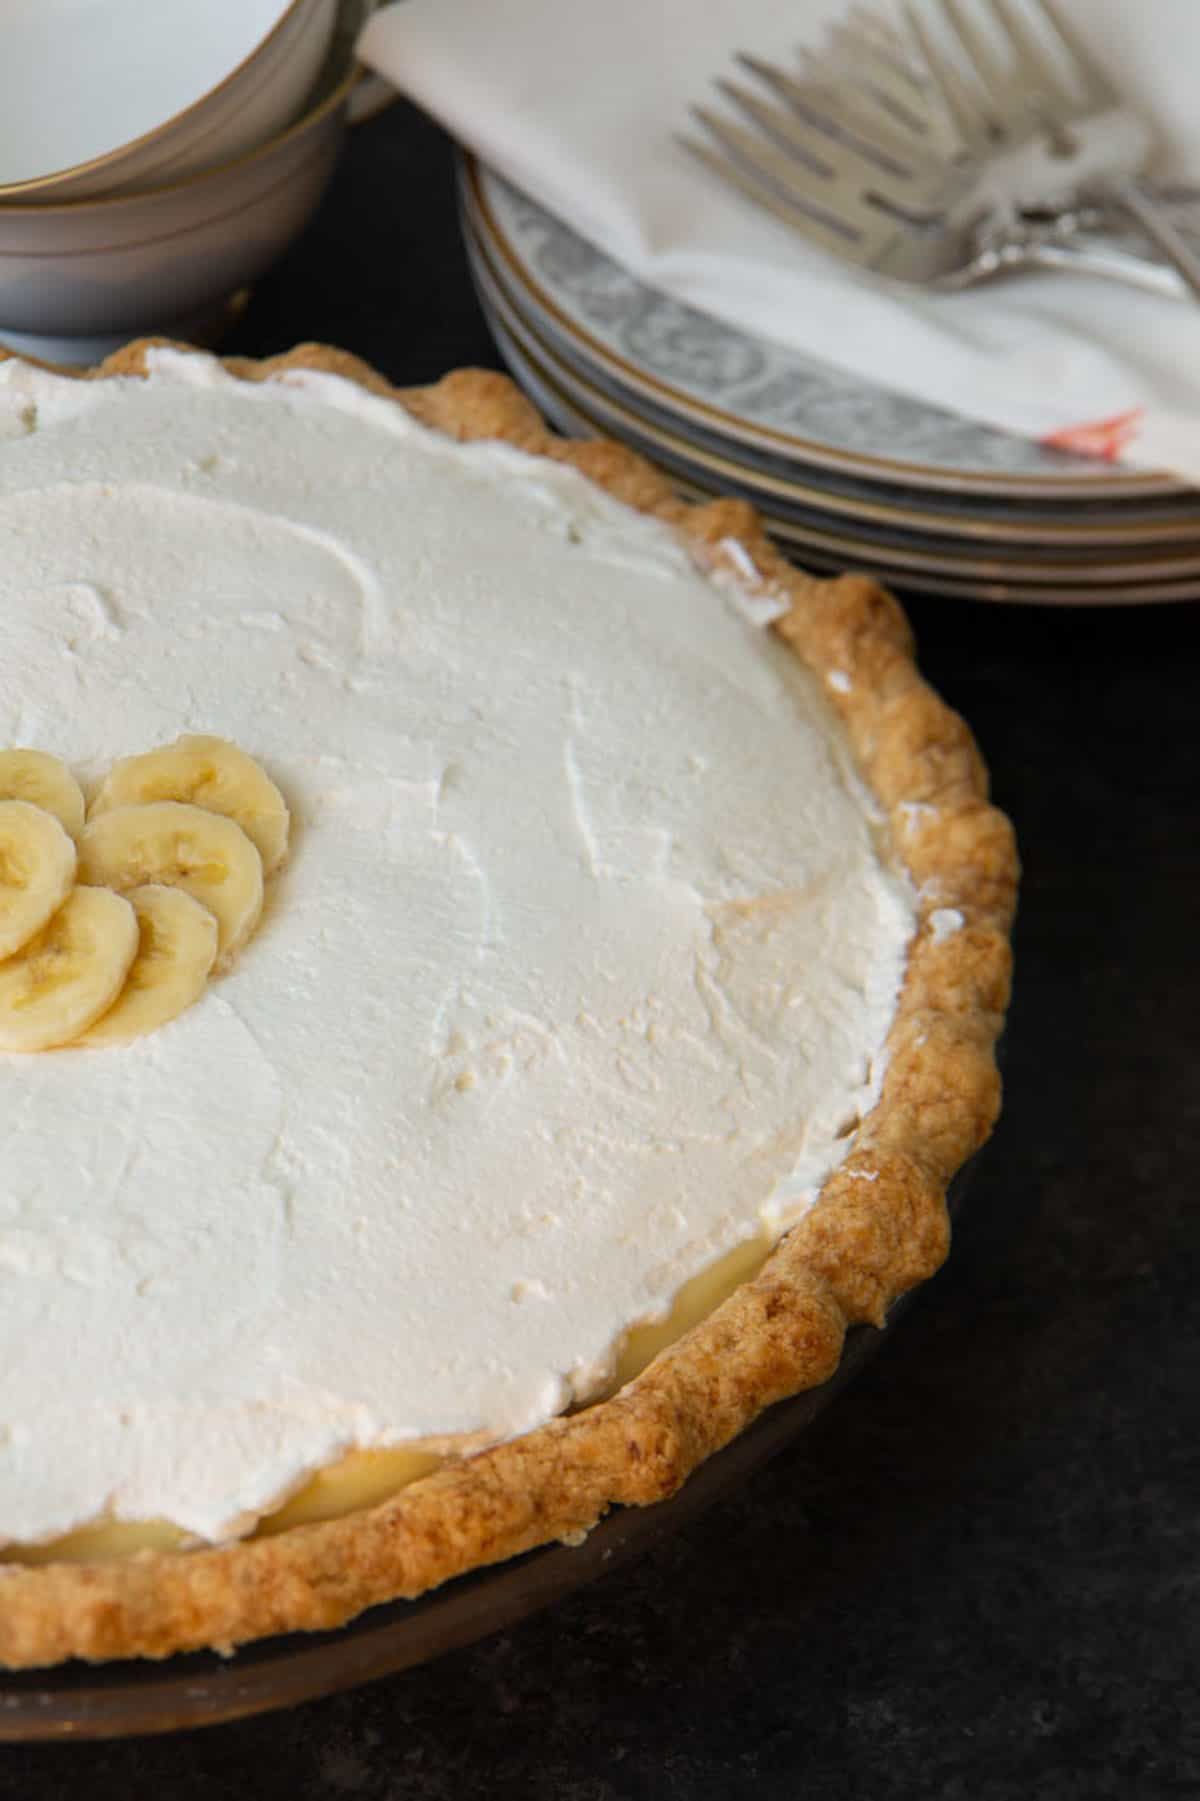 An entire banana cream pie topped with whipped cream